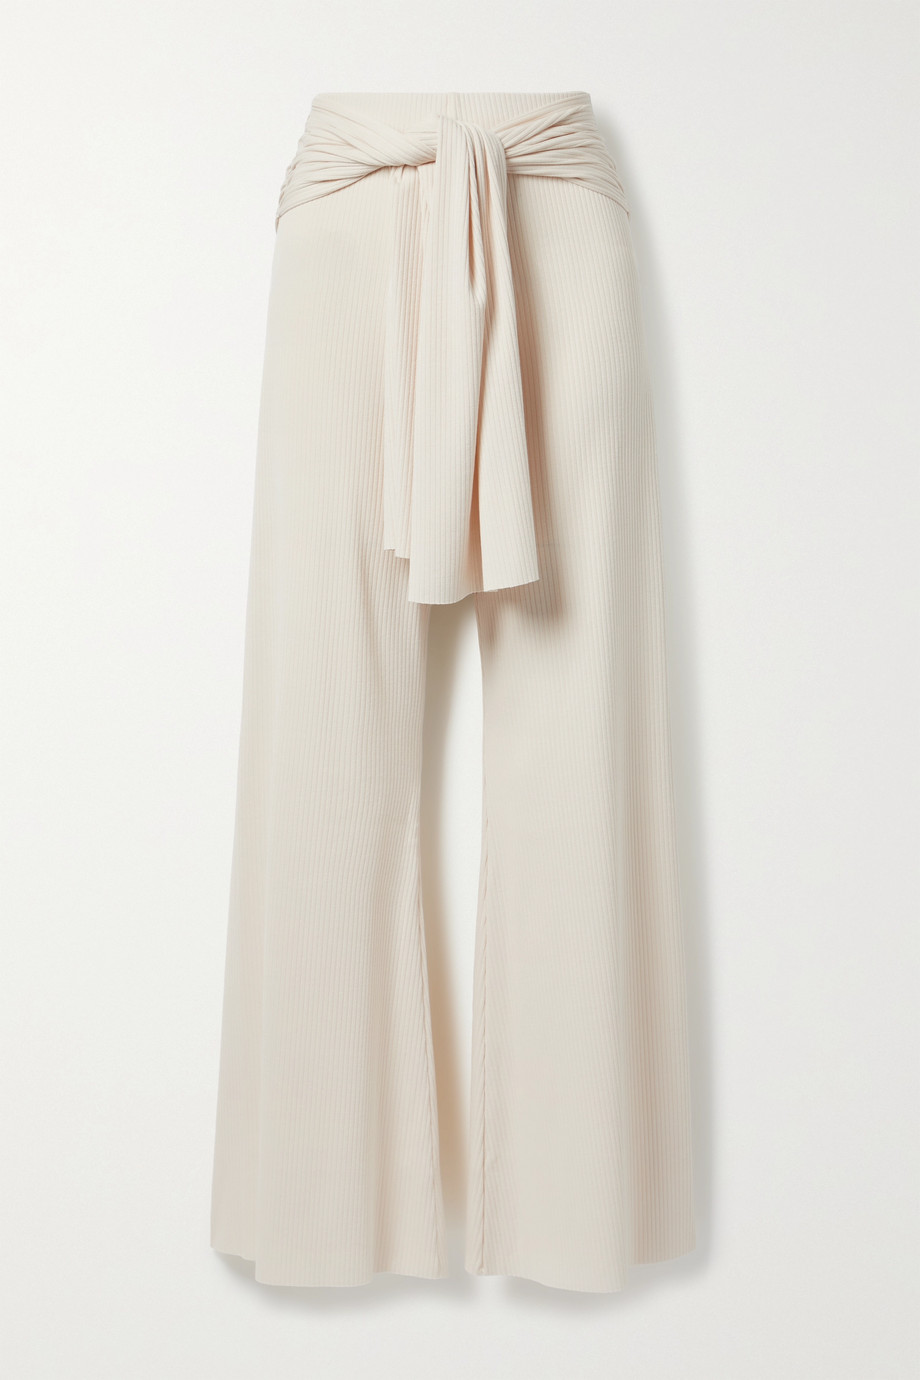 aaizél + NET SUSTAIN tie-front ribbed-knit flared pants